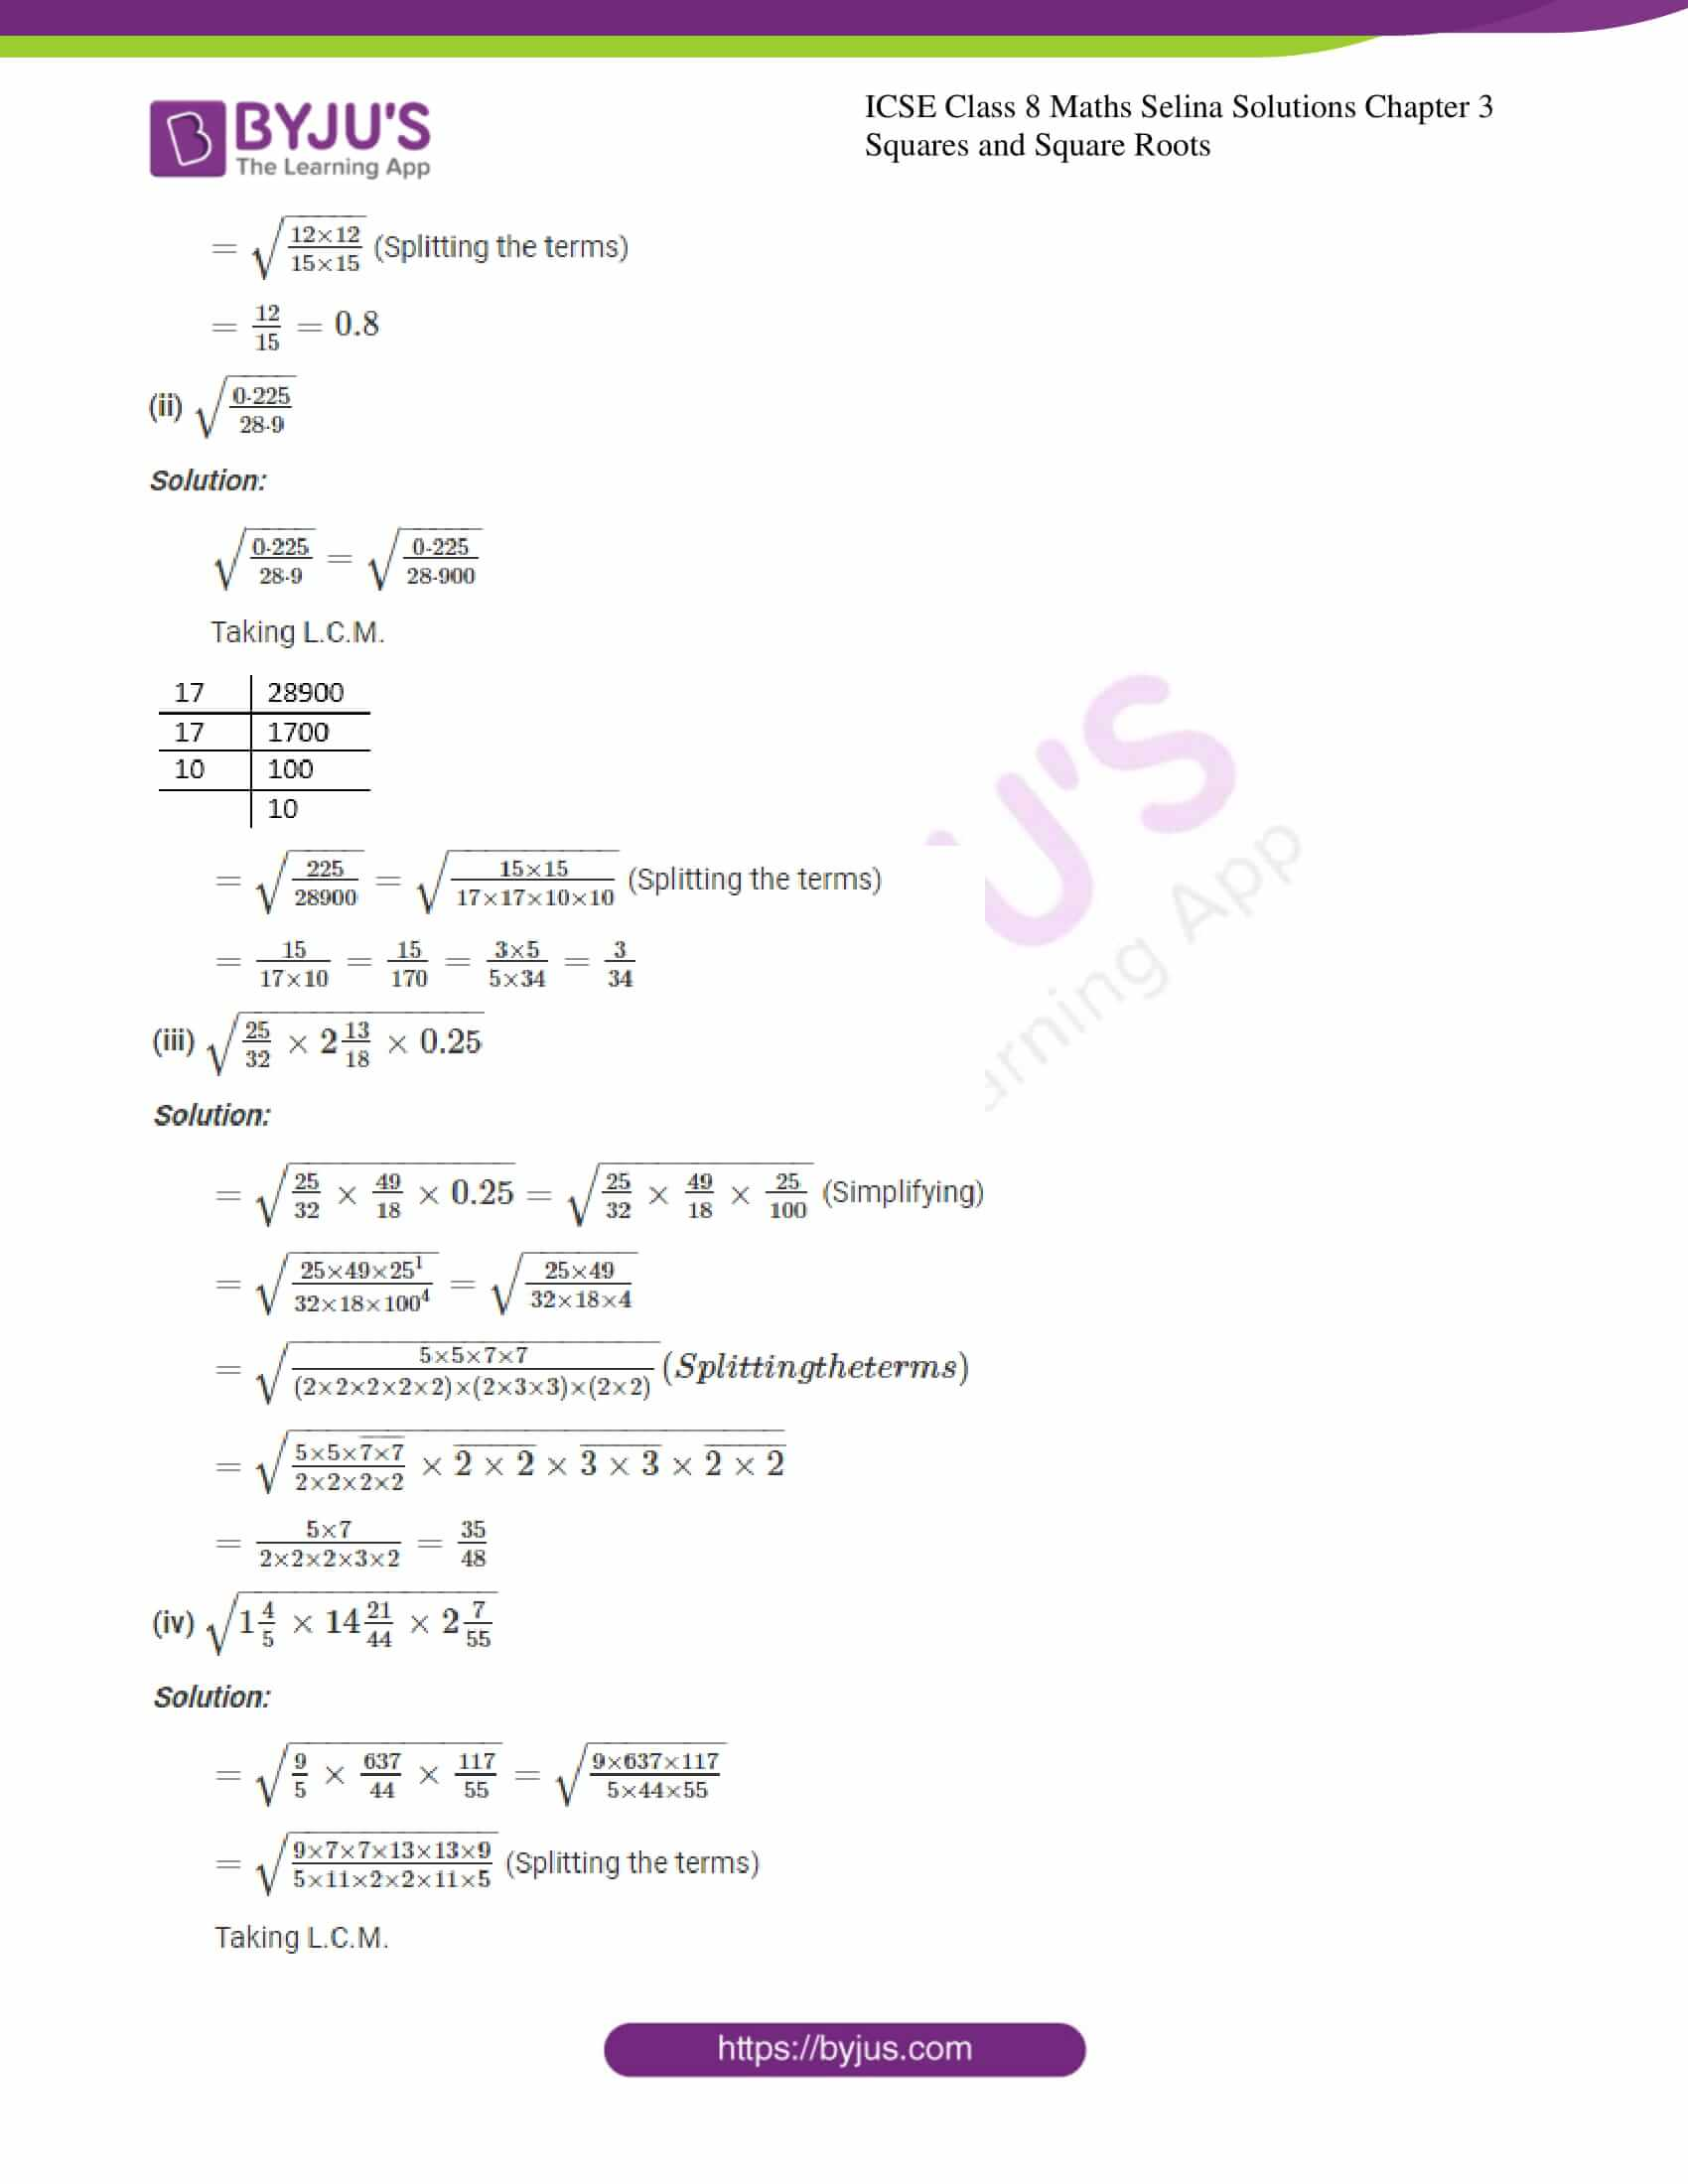 icse april7 class 8 maths selina solutions chapter 3 squares and square roots 04